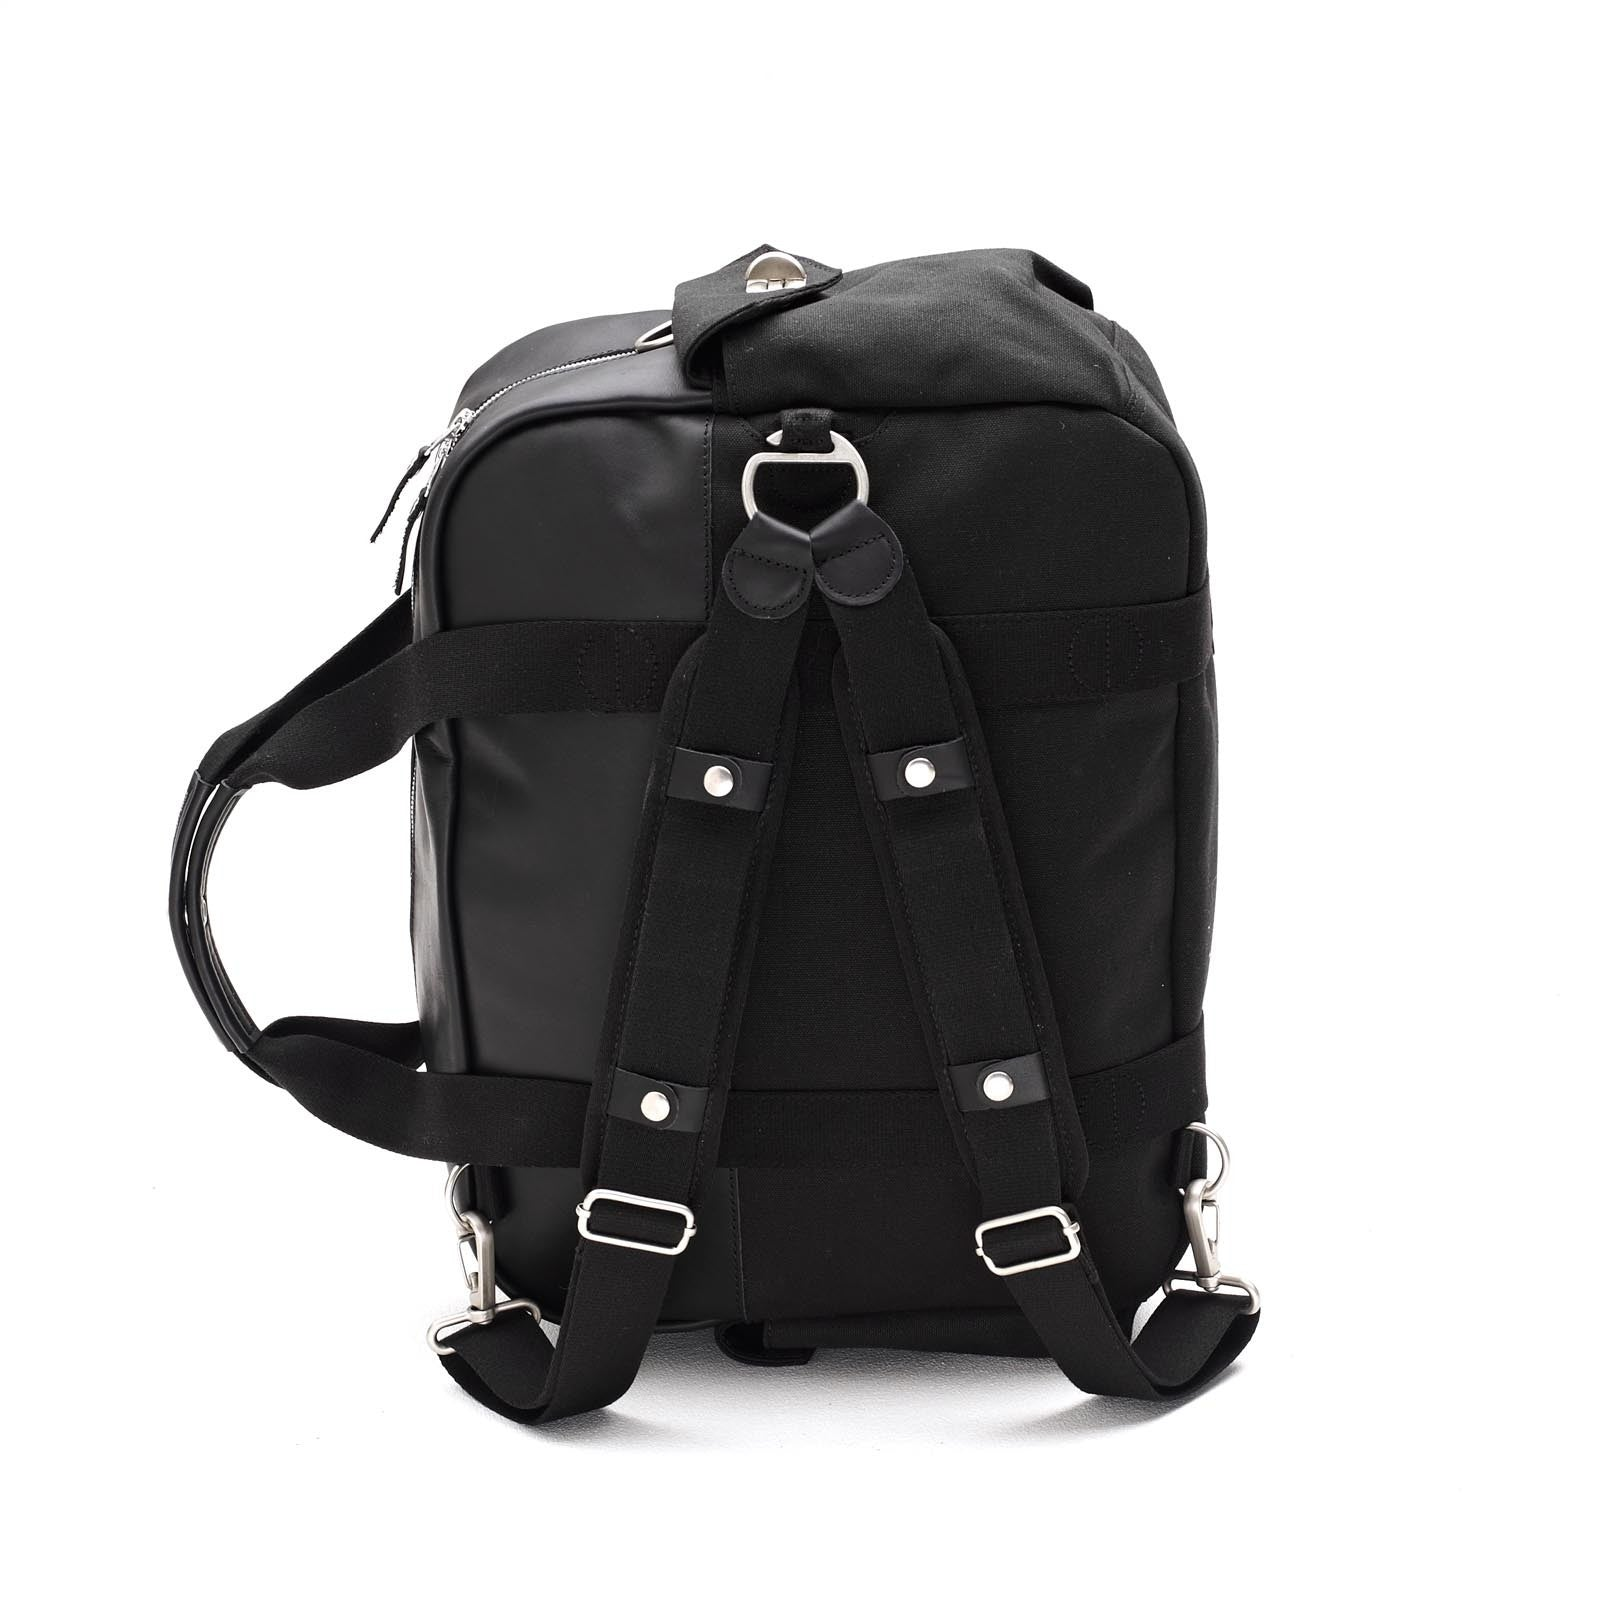 Overnighter Black Leather Qwstion